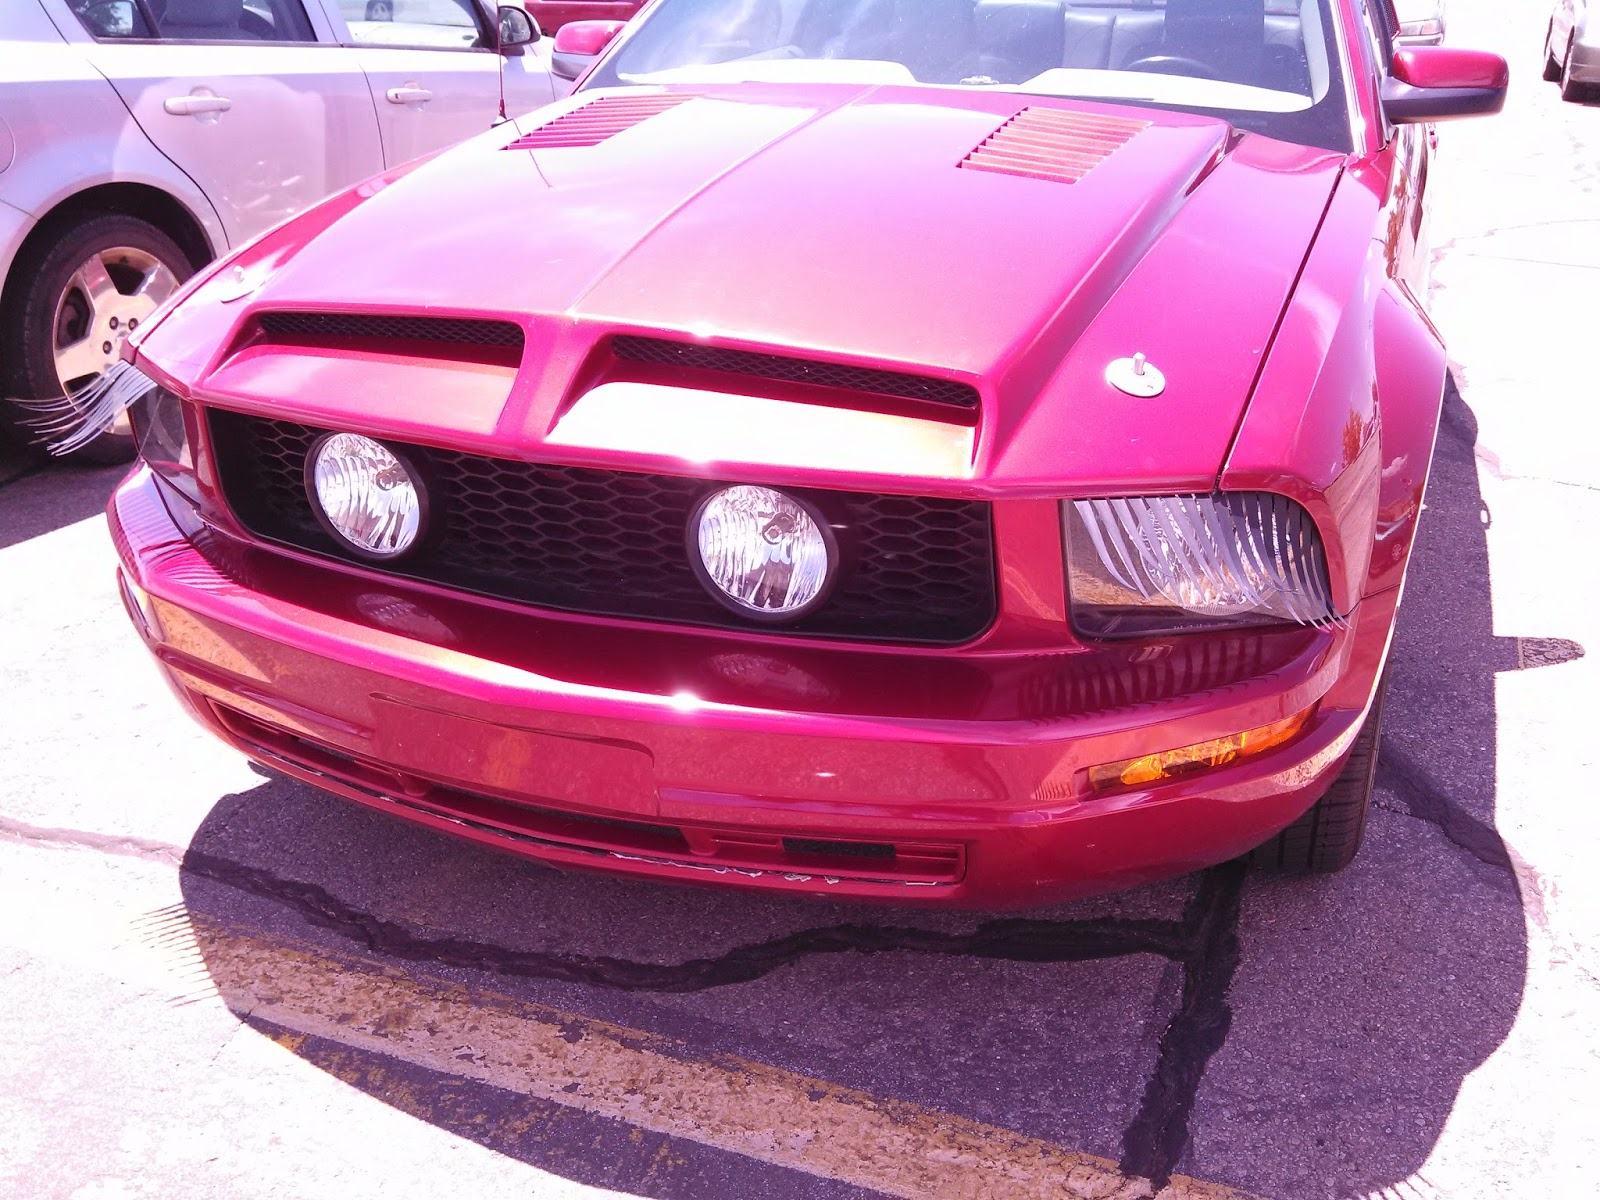 Completely Indie Cars With Eyelashes